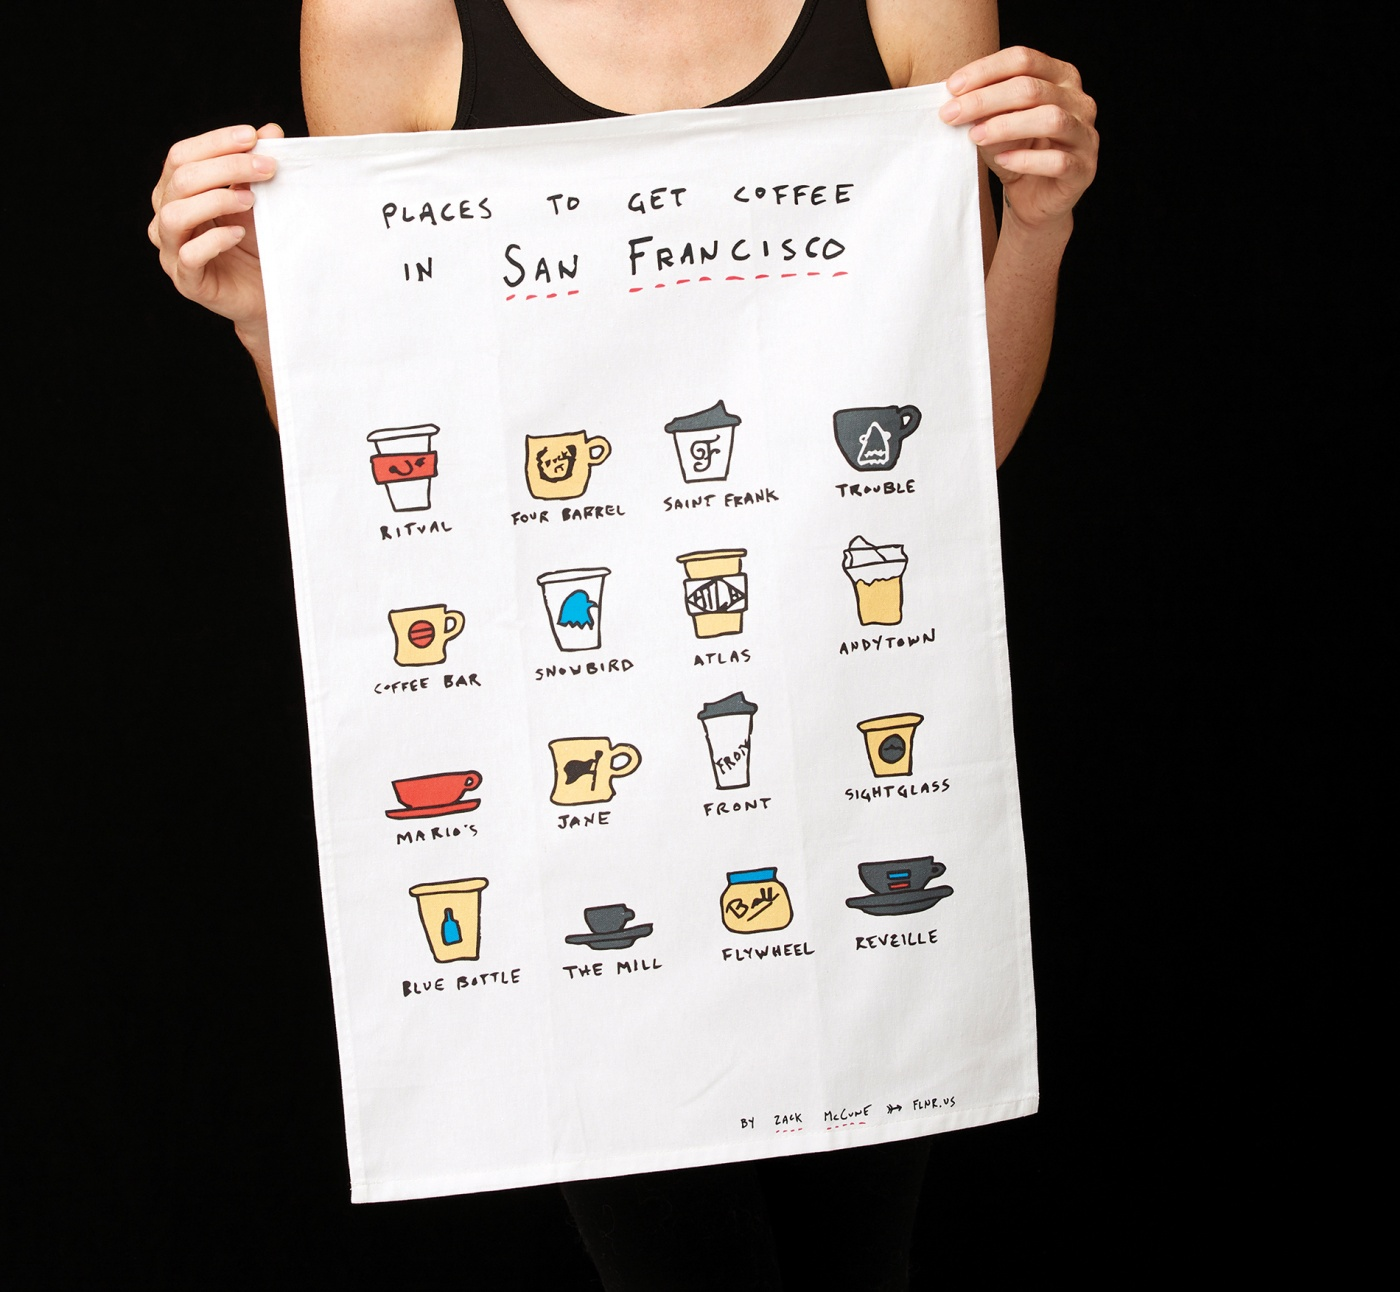 SF coffee spots towel